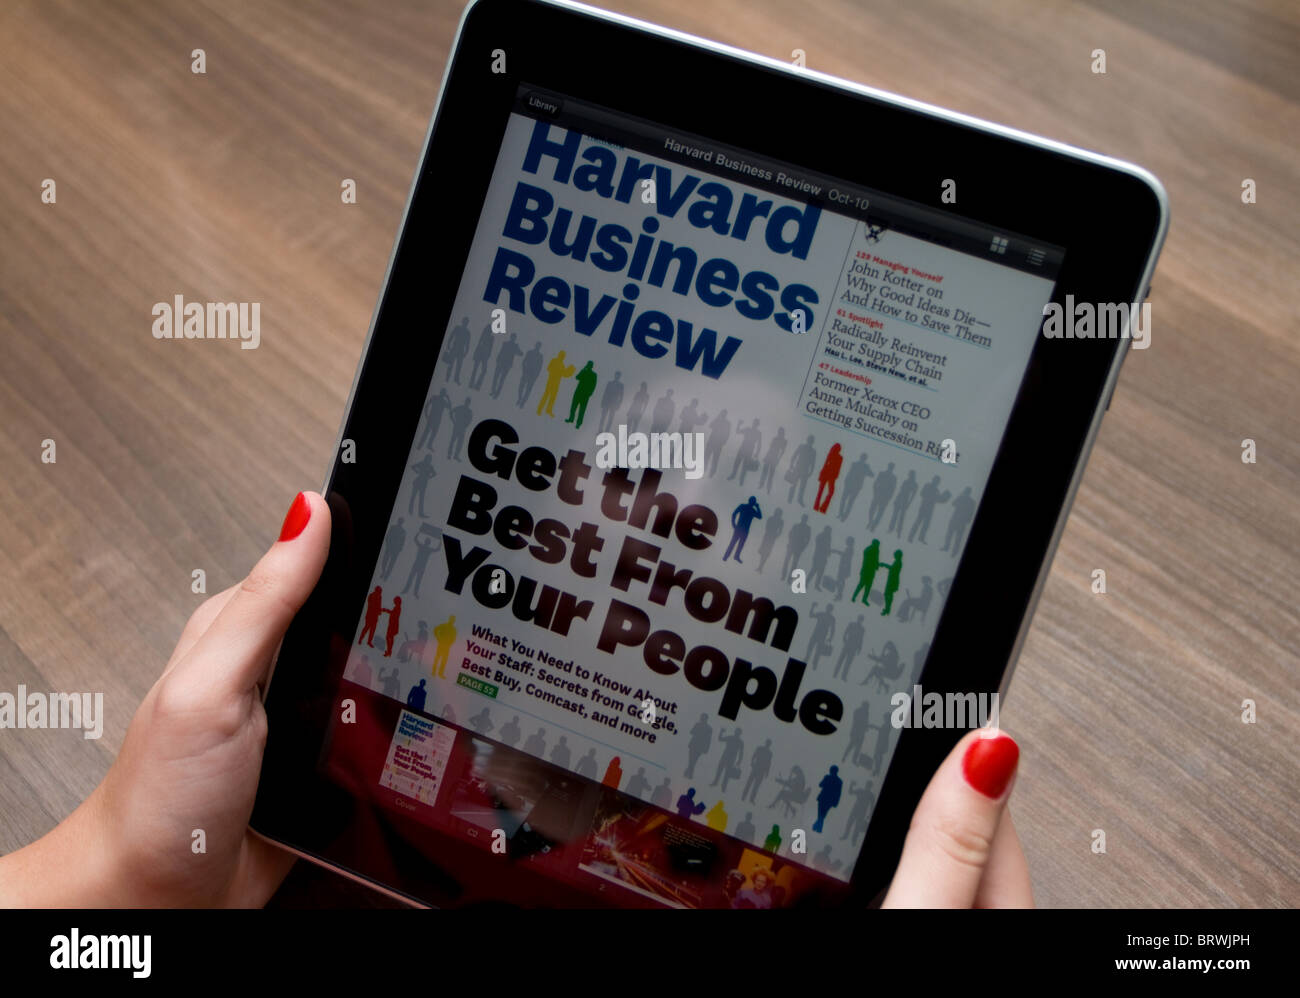 Stock Photo  Woman's Hands Holding An Apple Ipad With Her Reflection On  The Screen, Showing Harvard Business Review Magazine